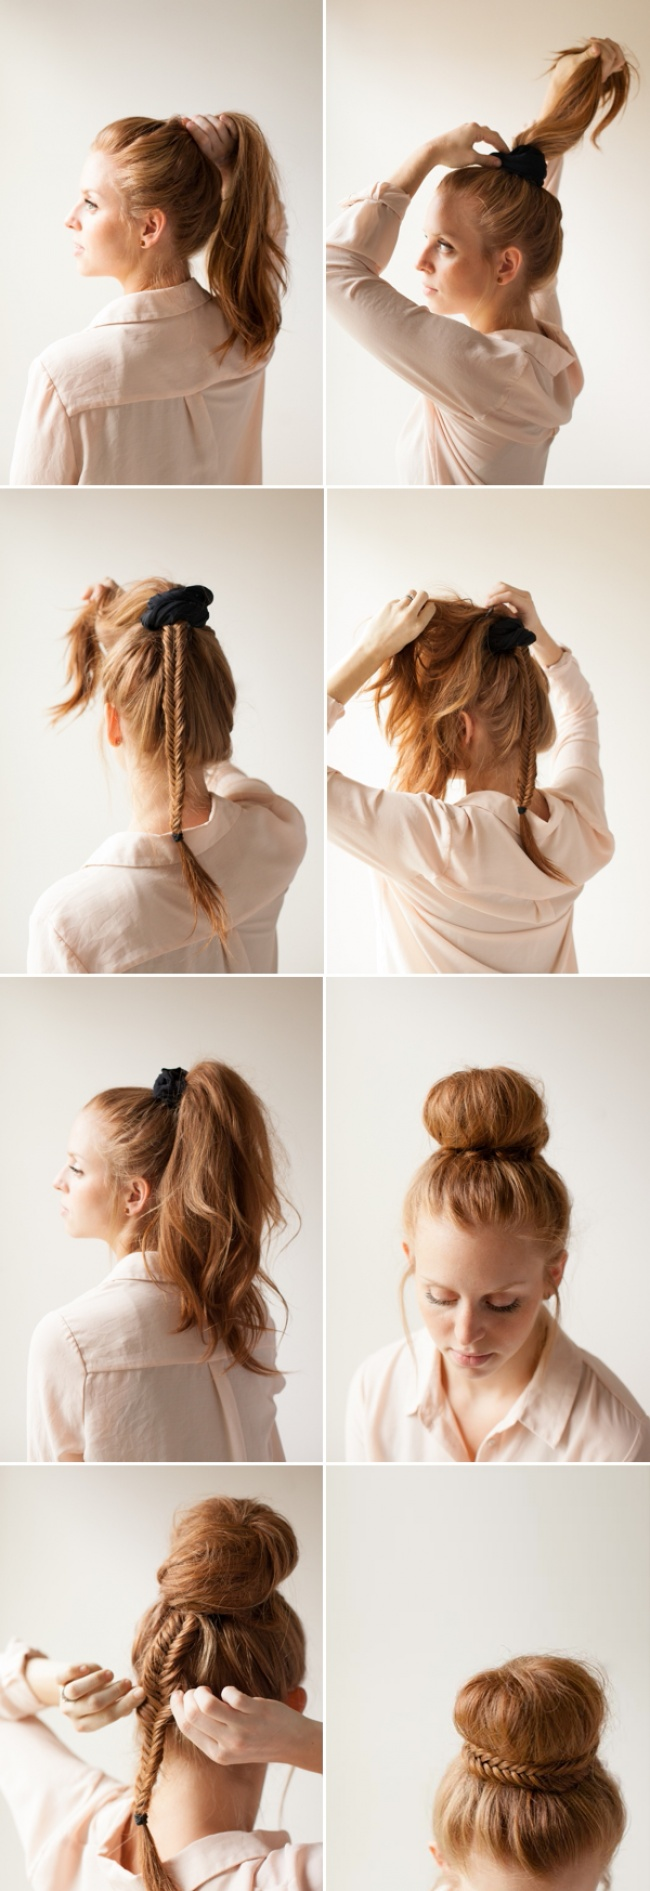 11552915-diy-elegant-fishtail-bun-wedding-updos1-1467842639-650-5f6b37ccf0-1467977395